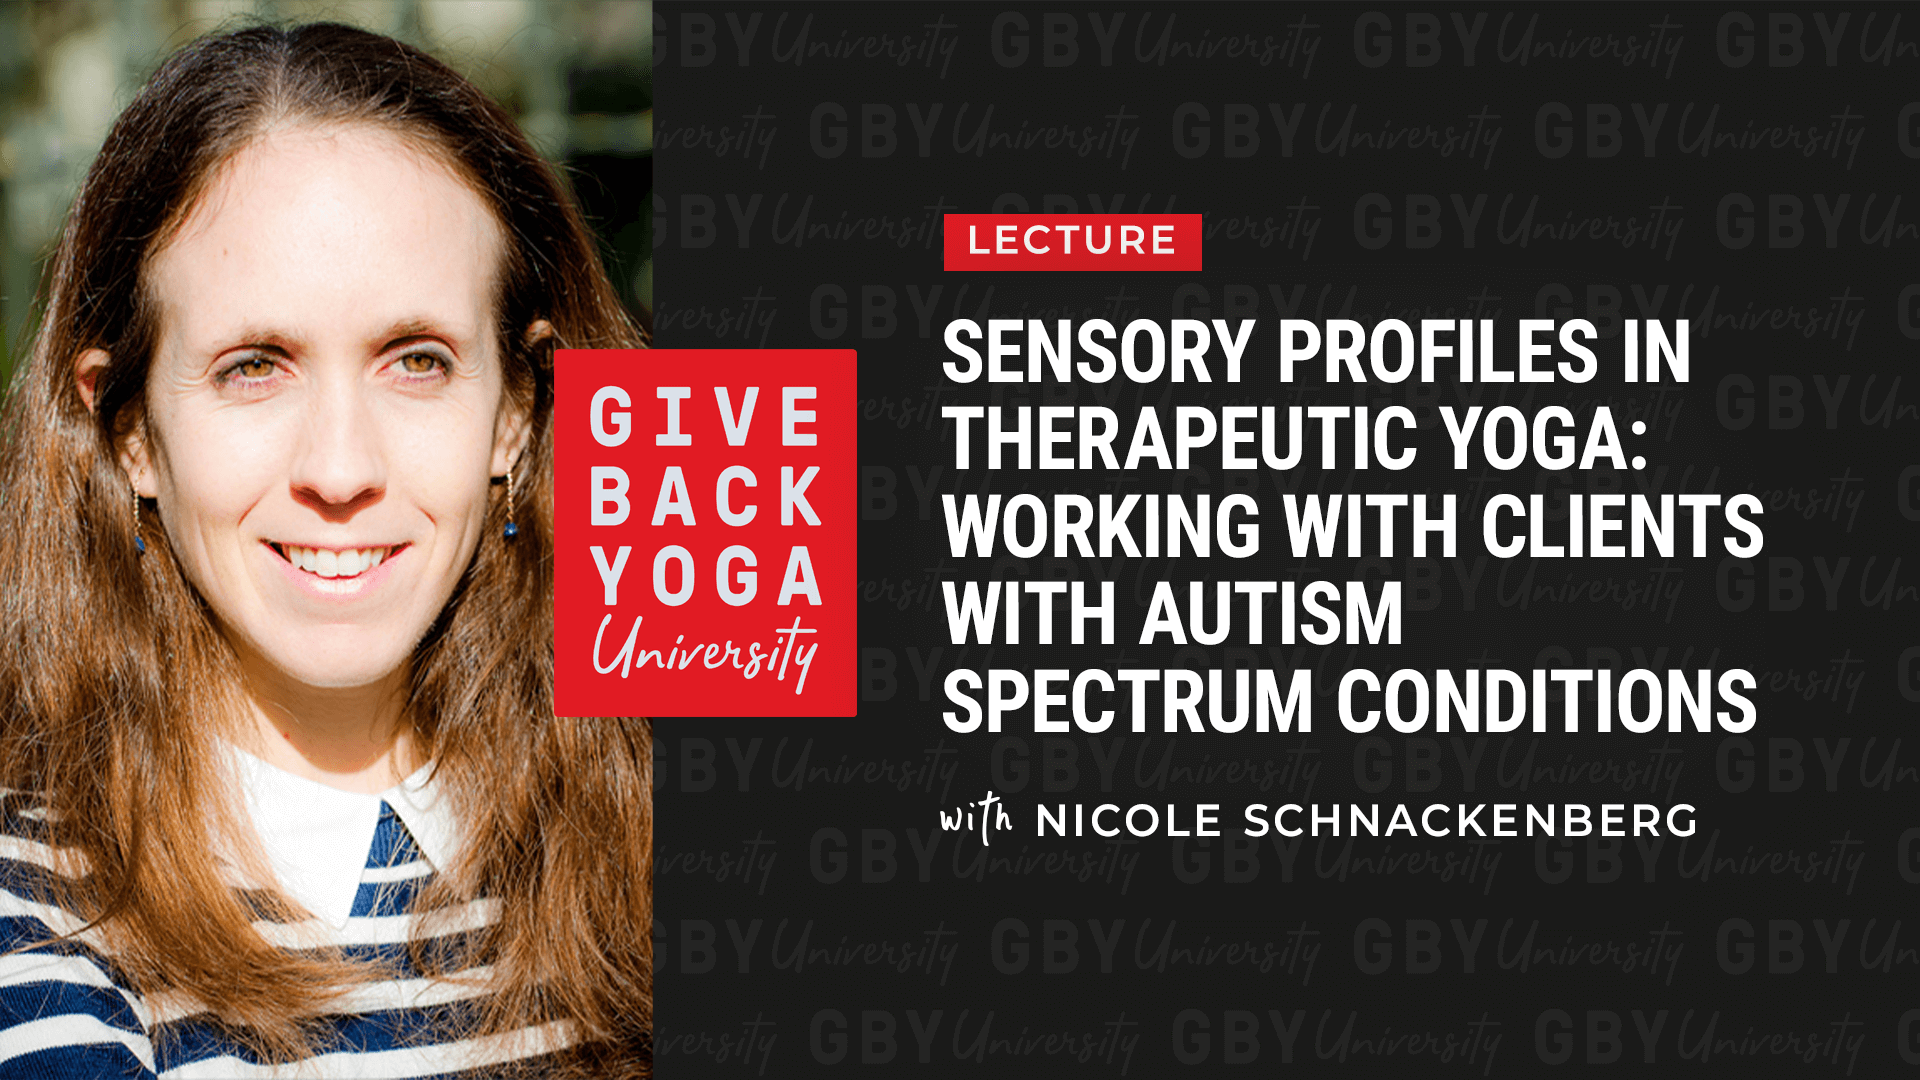 Sensory Profiles in Therapeutic Yoga: Working with Autism Spectrum Conditions, with Nicole Schnackenberg